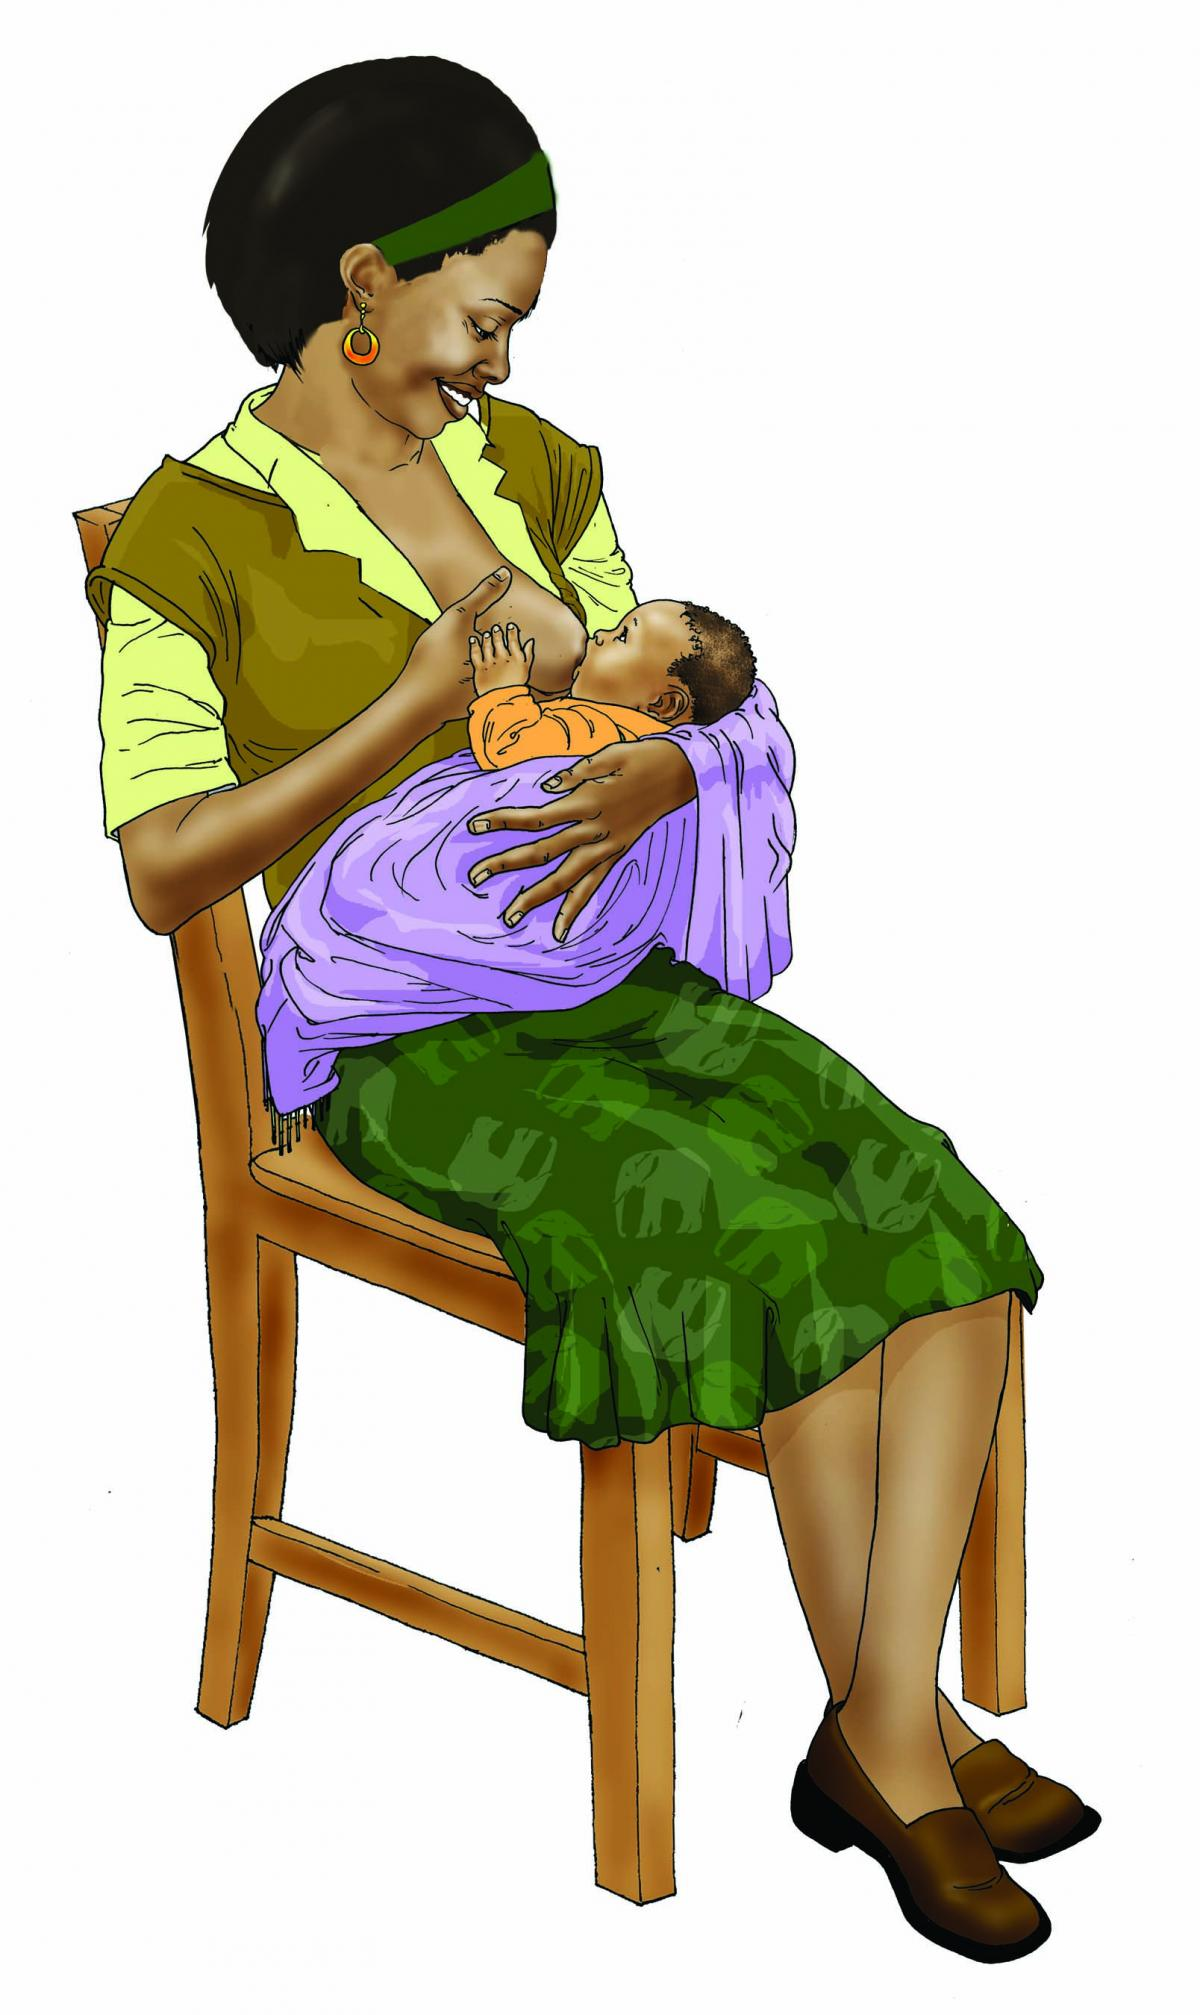 Breastfeeding - Exclusive breastfeeding - sitting 0-6 mo - 00B - Non-country specific